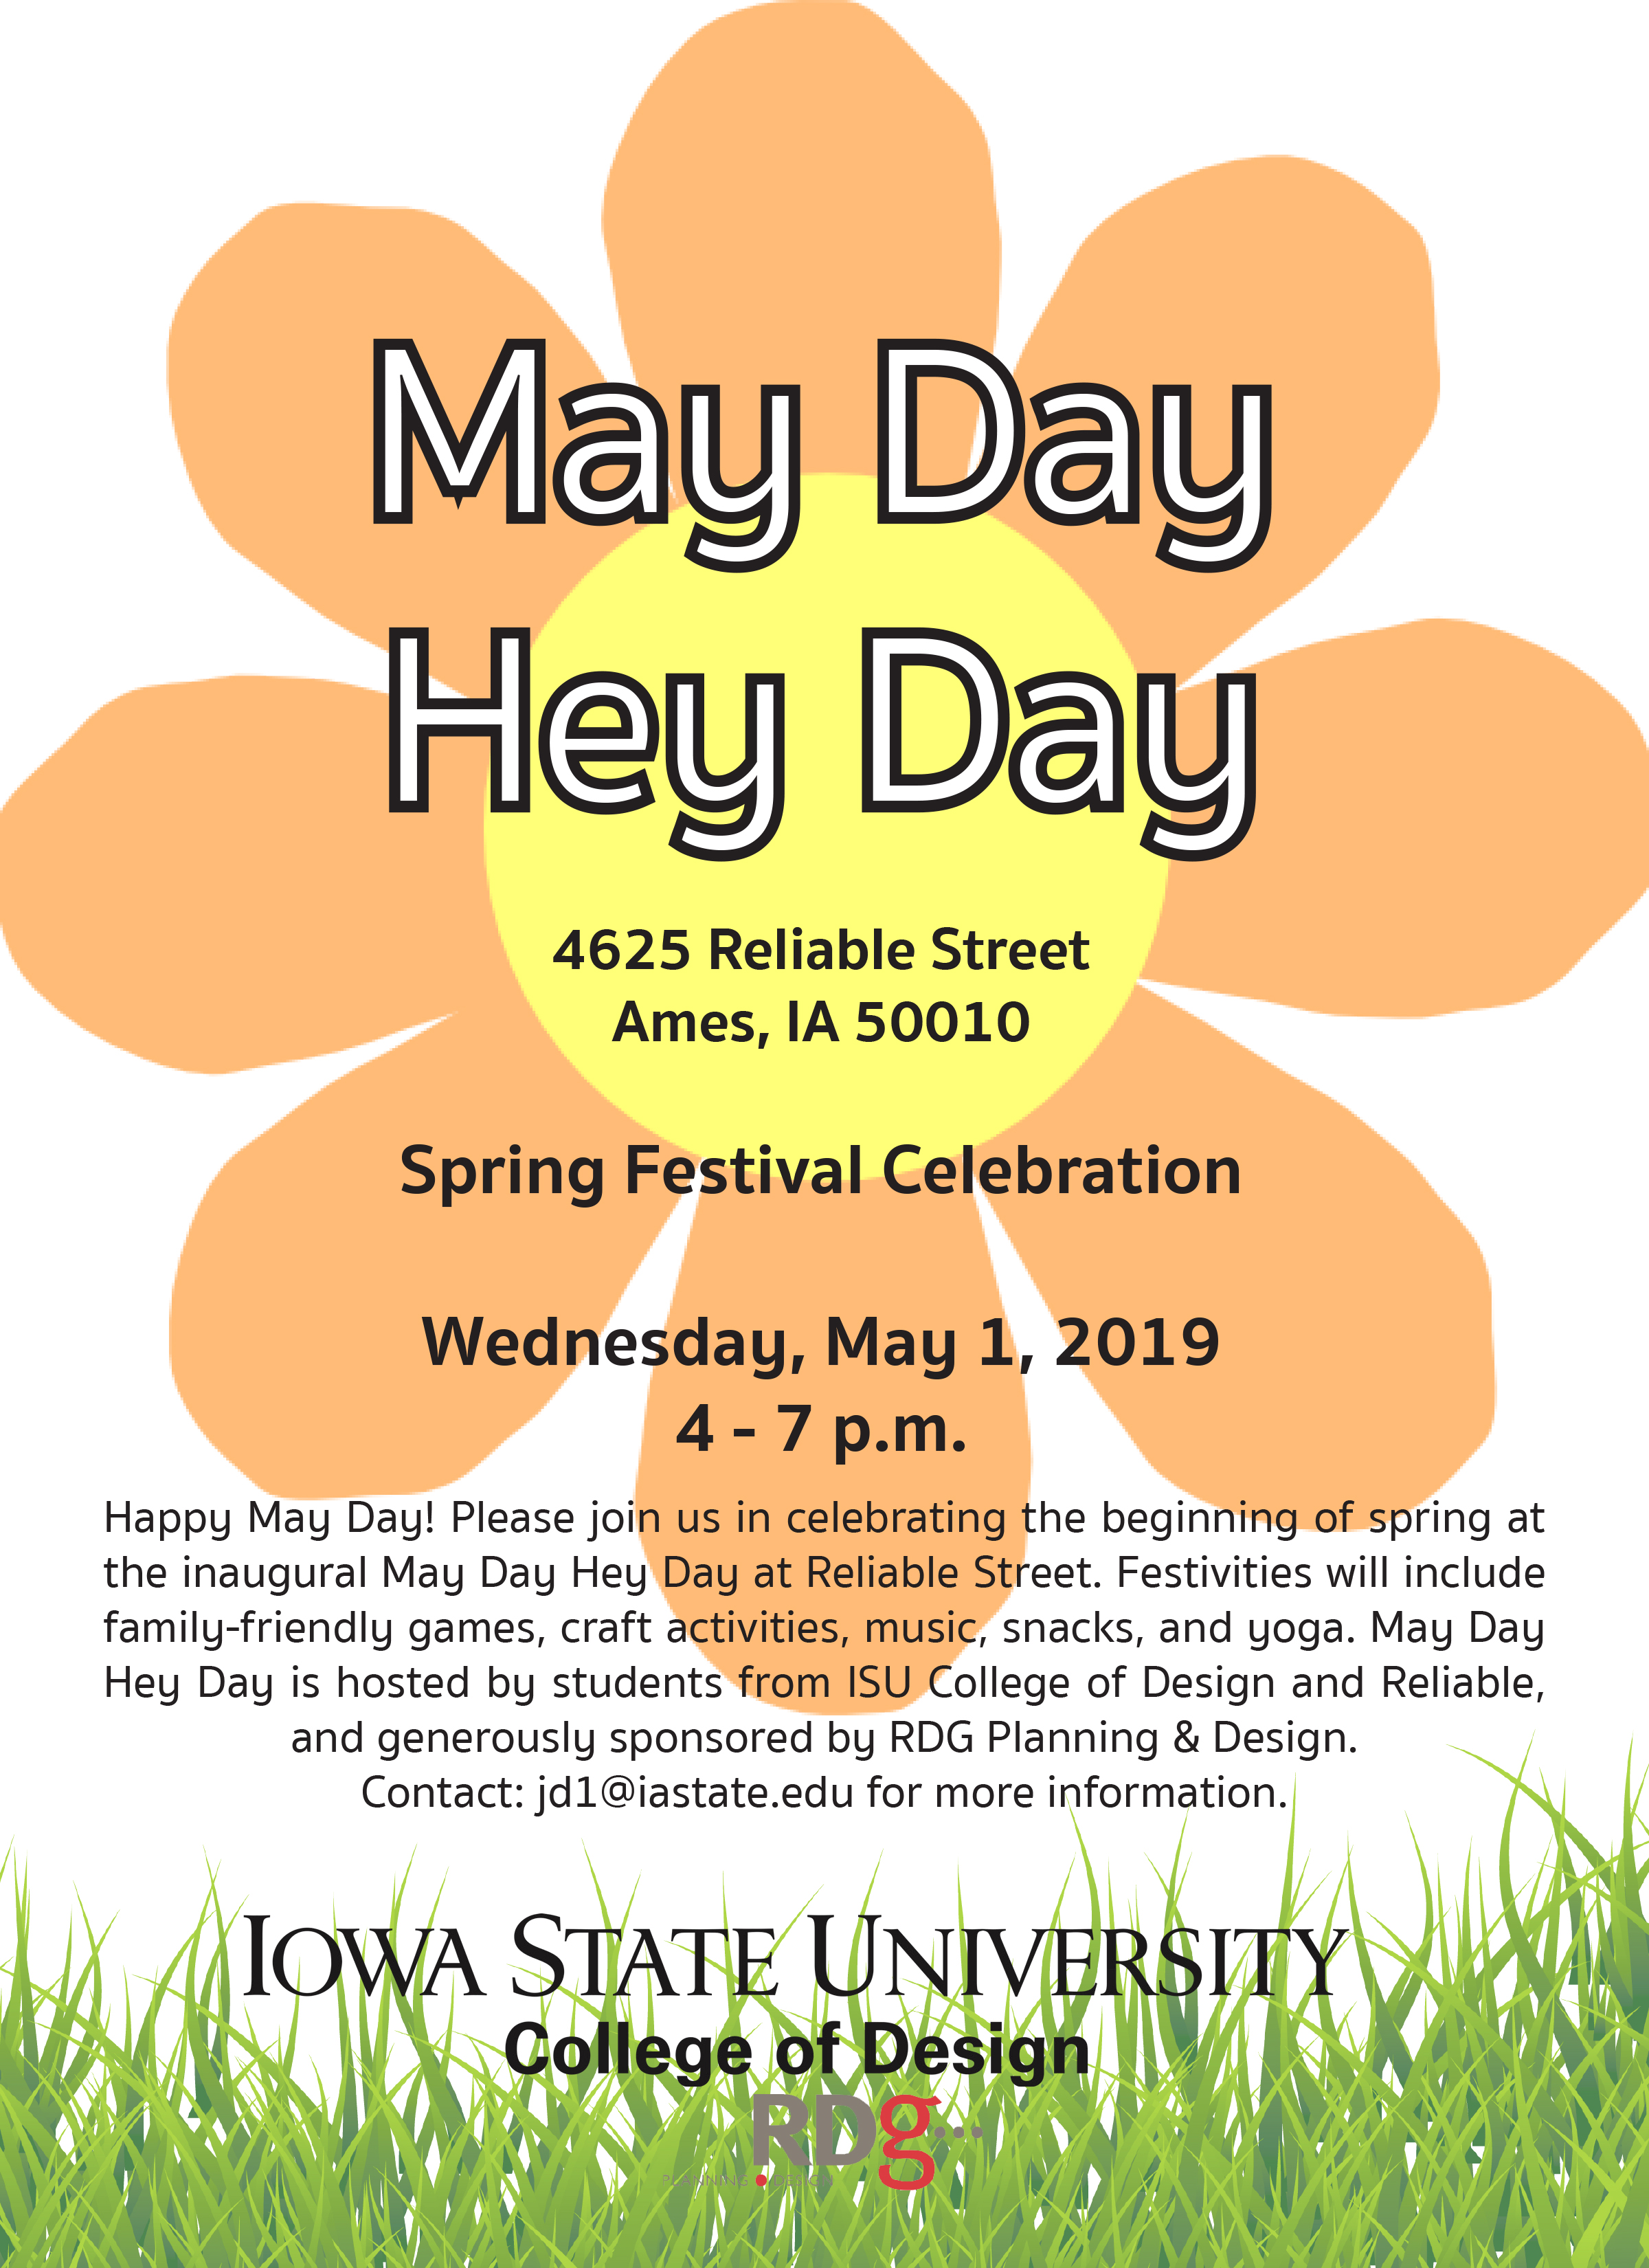 May Day Hey Day Celebration